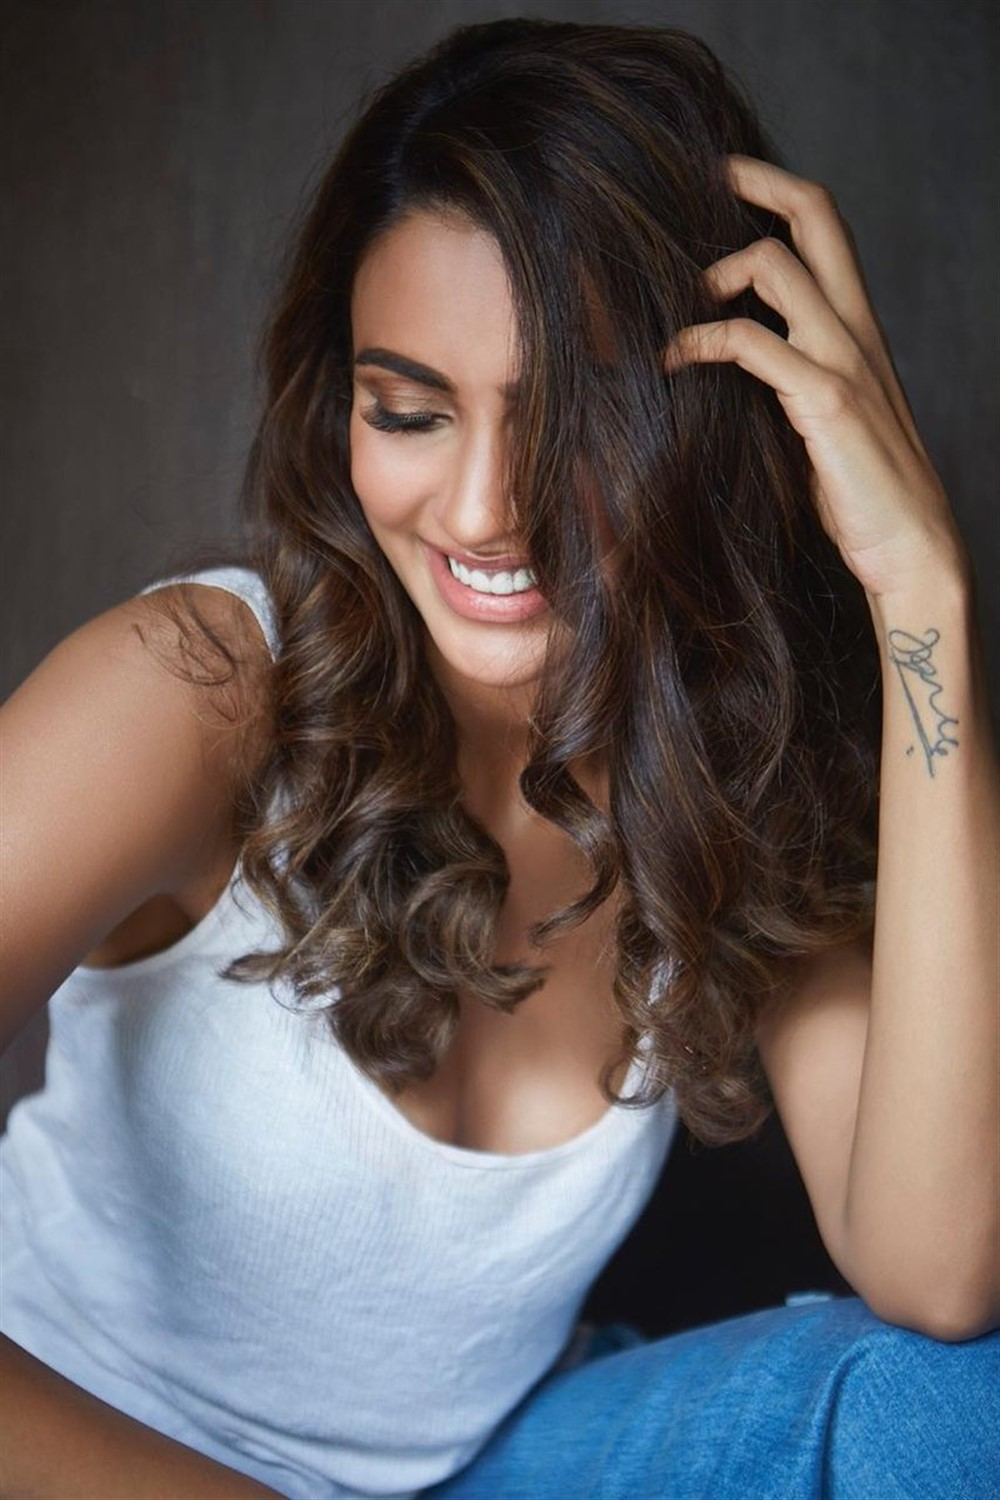 actress-akshara-gowda-photoshoot-images-4